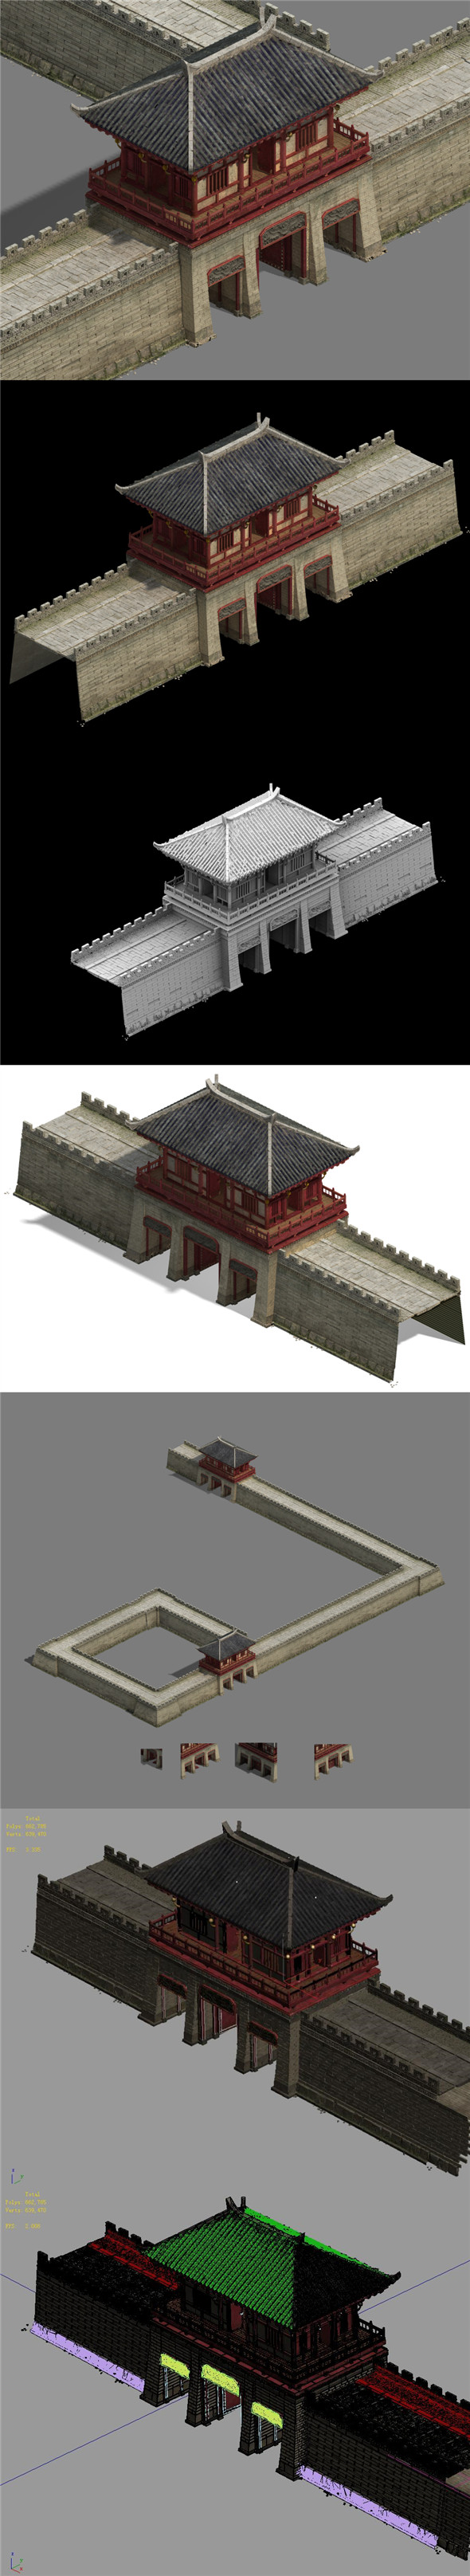 City Gate - City Wall - City Cape 01 - 3DOcean Item for Sale